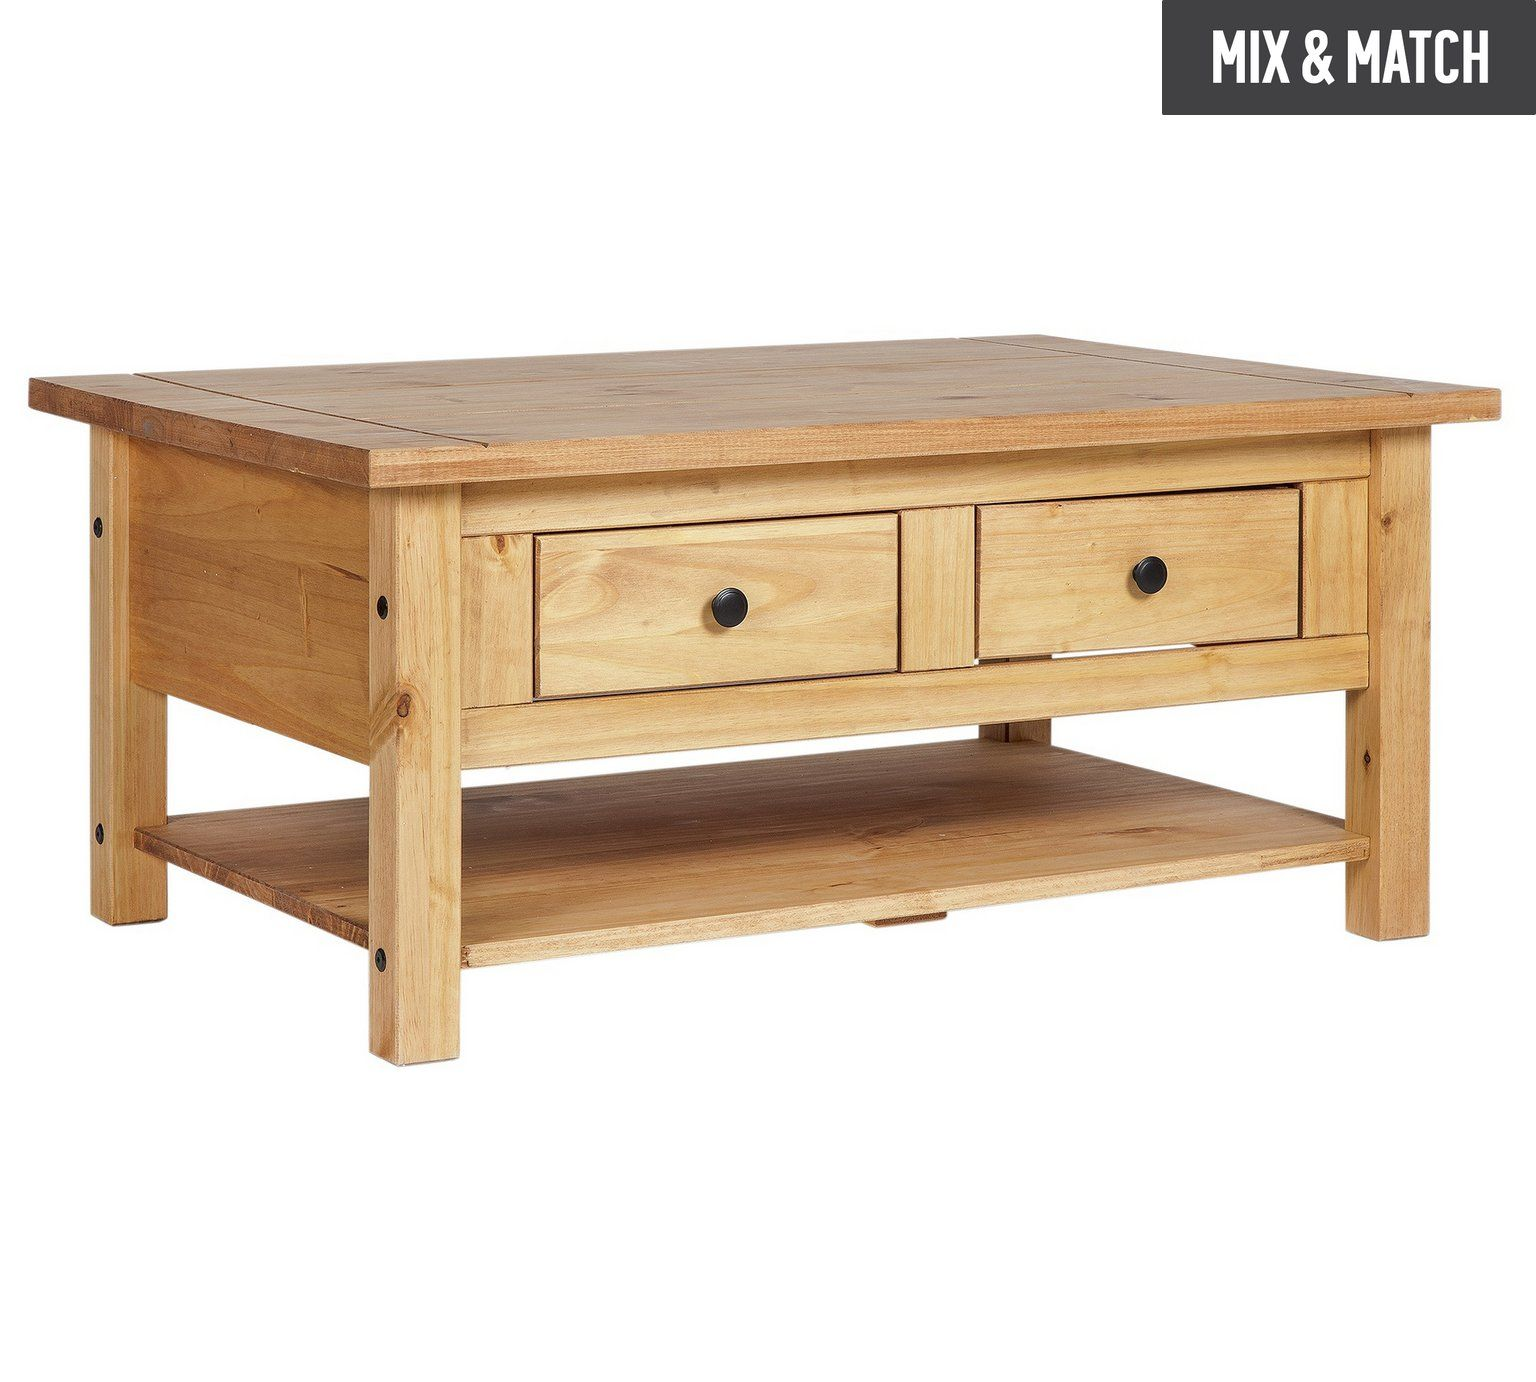 Exceptionnel Buy HOME San Diego 2 Drawers 1 Shelf Coffee Table   Pine At Argos.co.uk,  Visit Argos.co.uk To Shop Online For Coffee Tables, Side Tables And Nest Of  Tables, ...